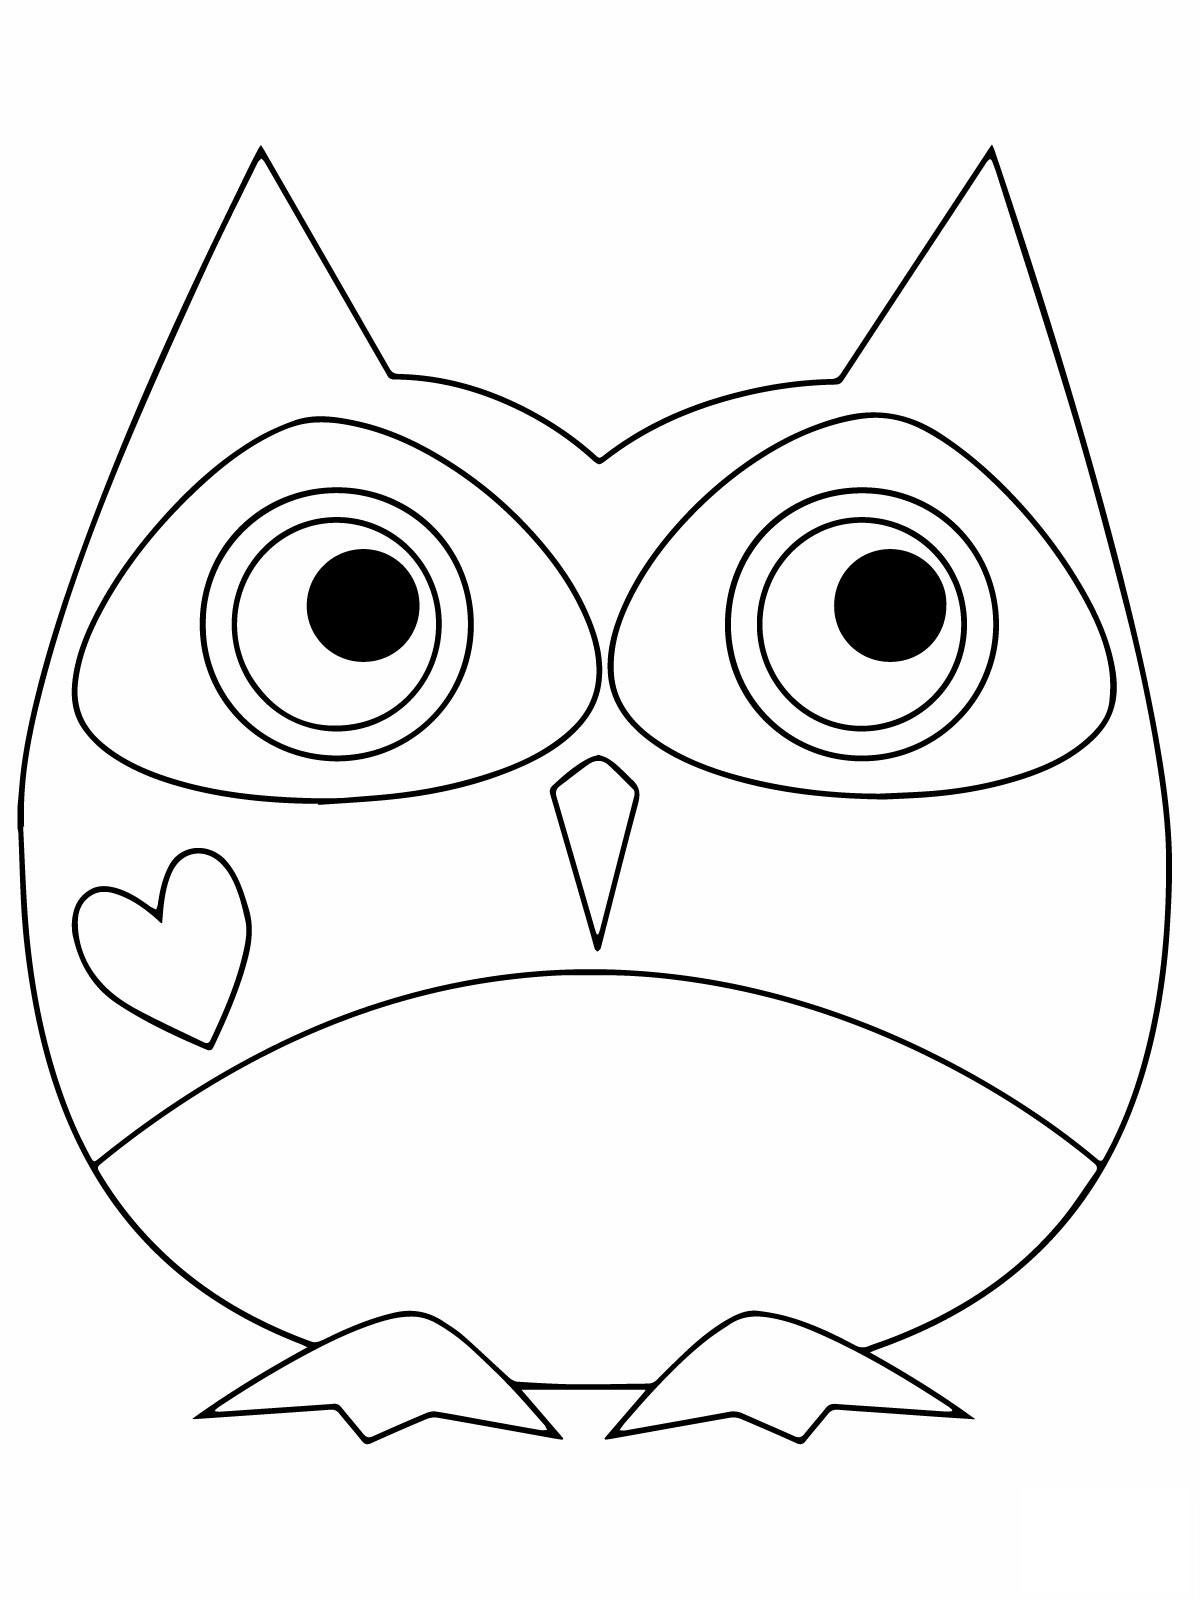 These are some owl coloring pages for you and your kids to enjoy